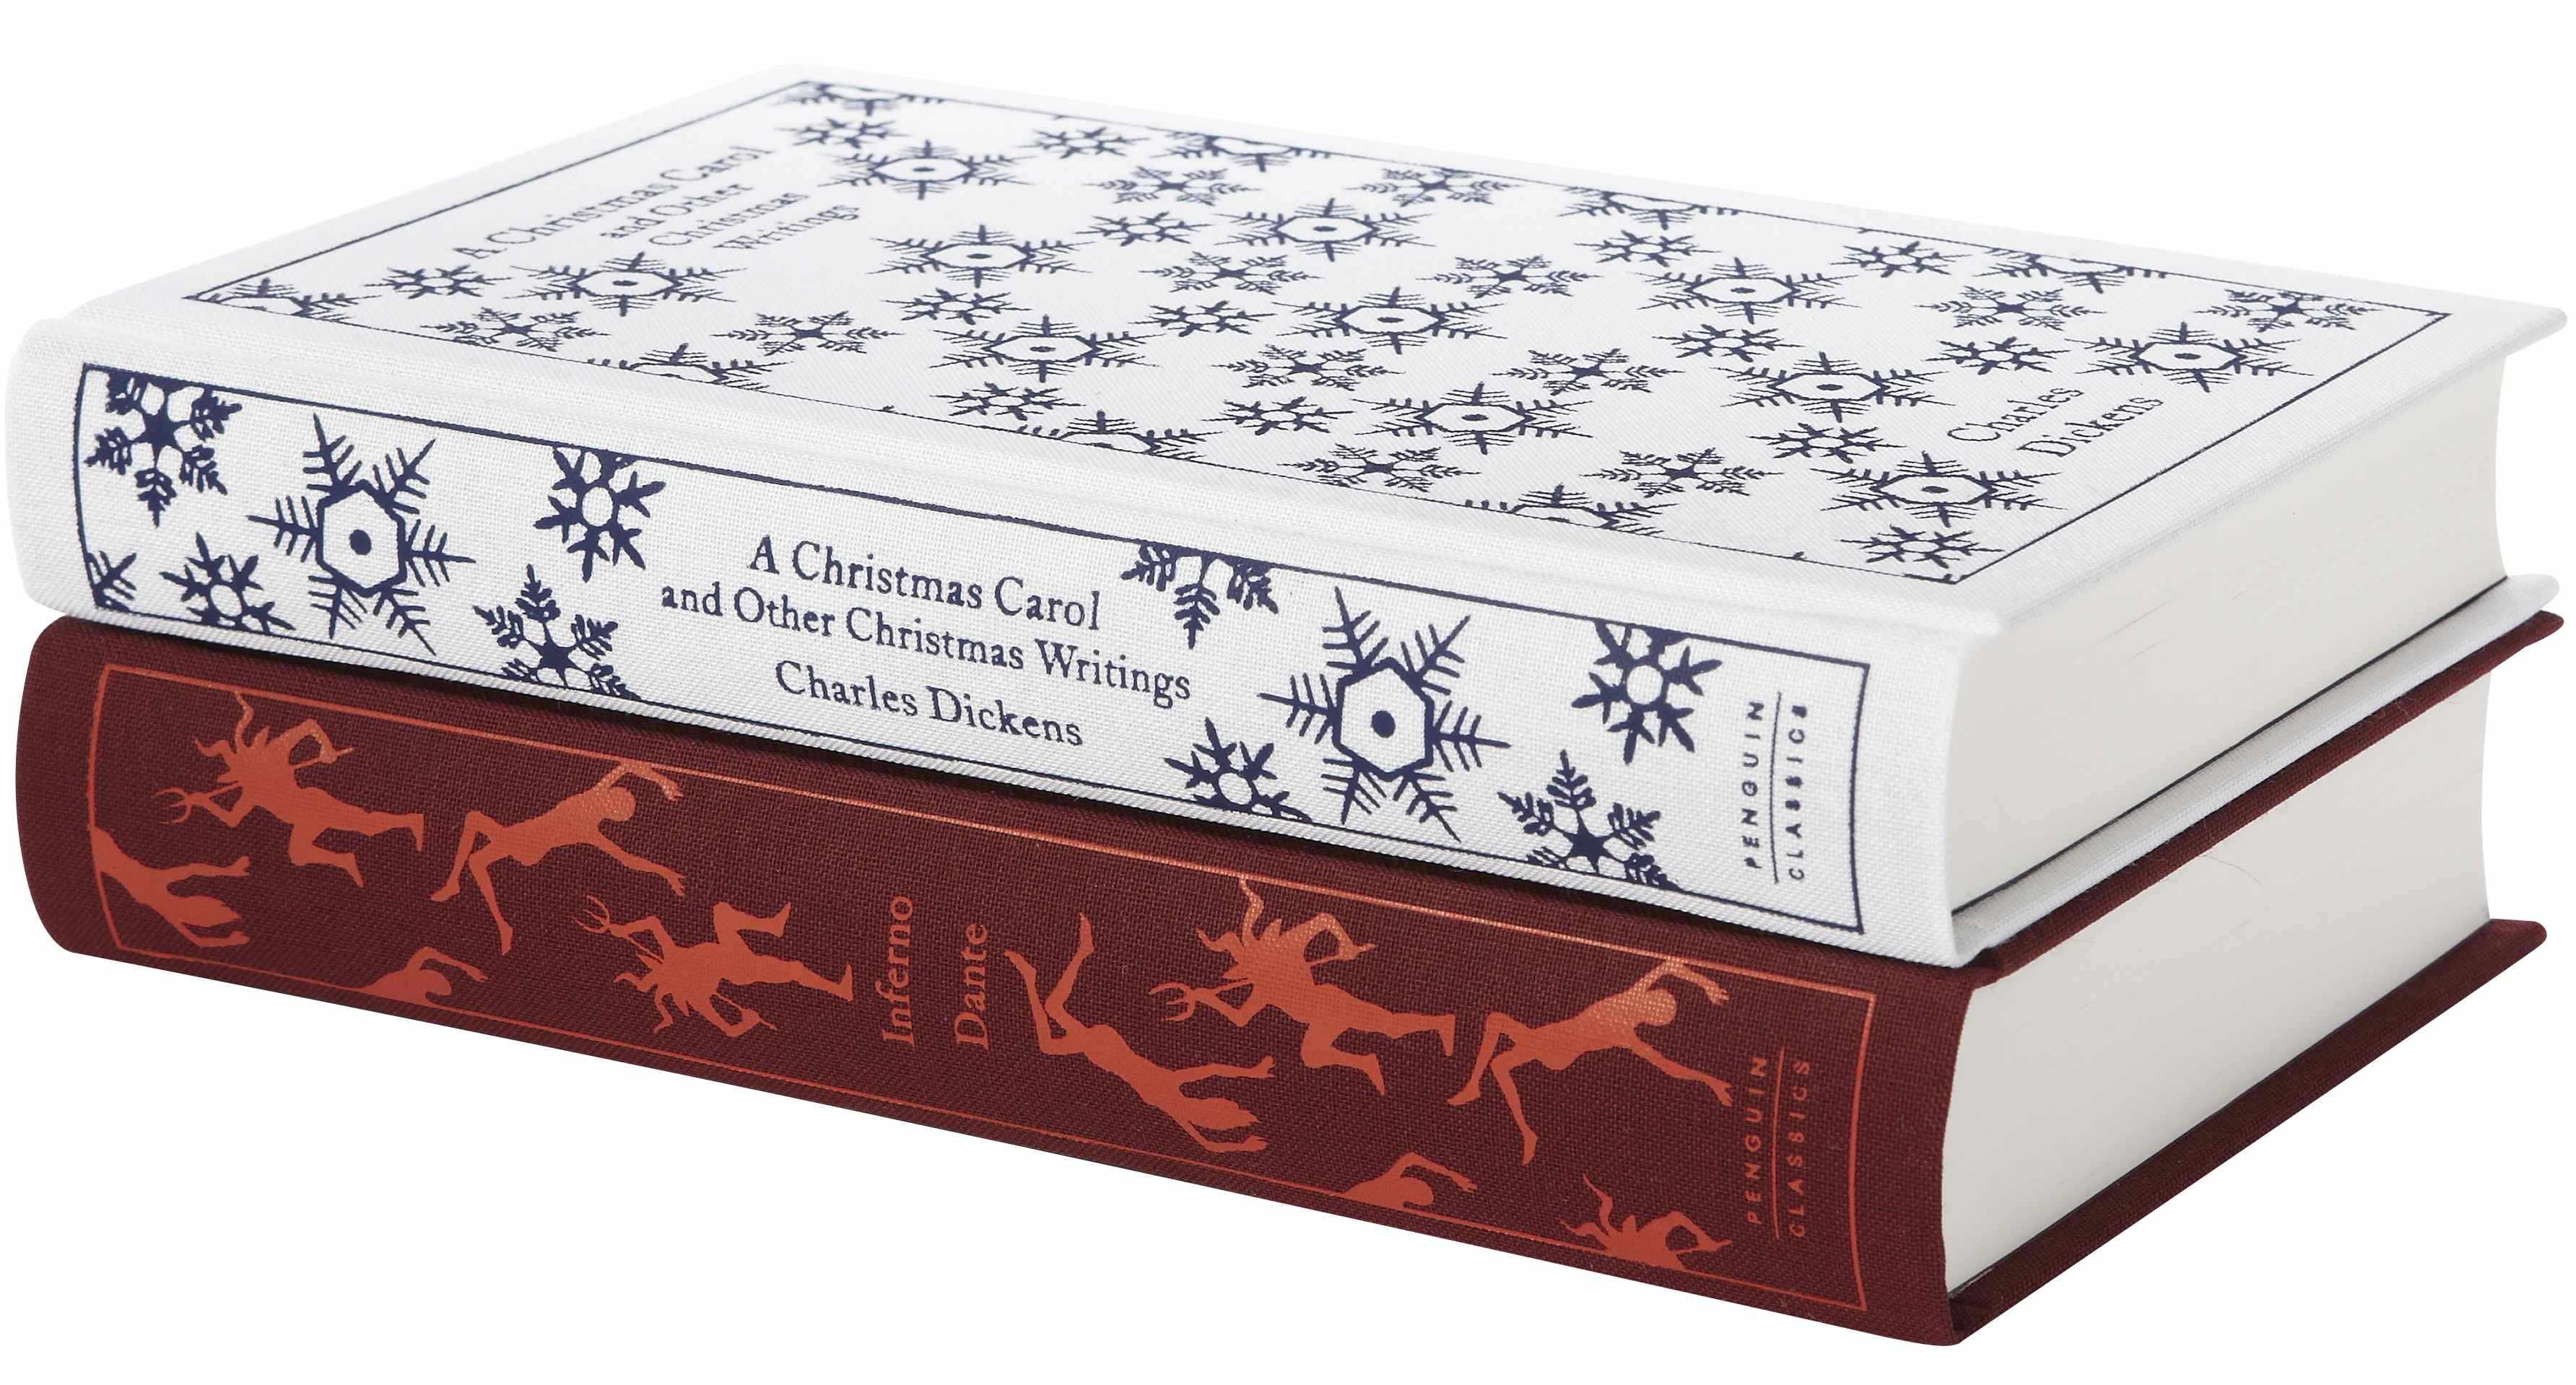 Gifting a book by its cover: Christmas gifts as heirlooms - Words ...